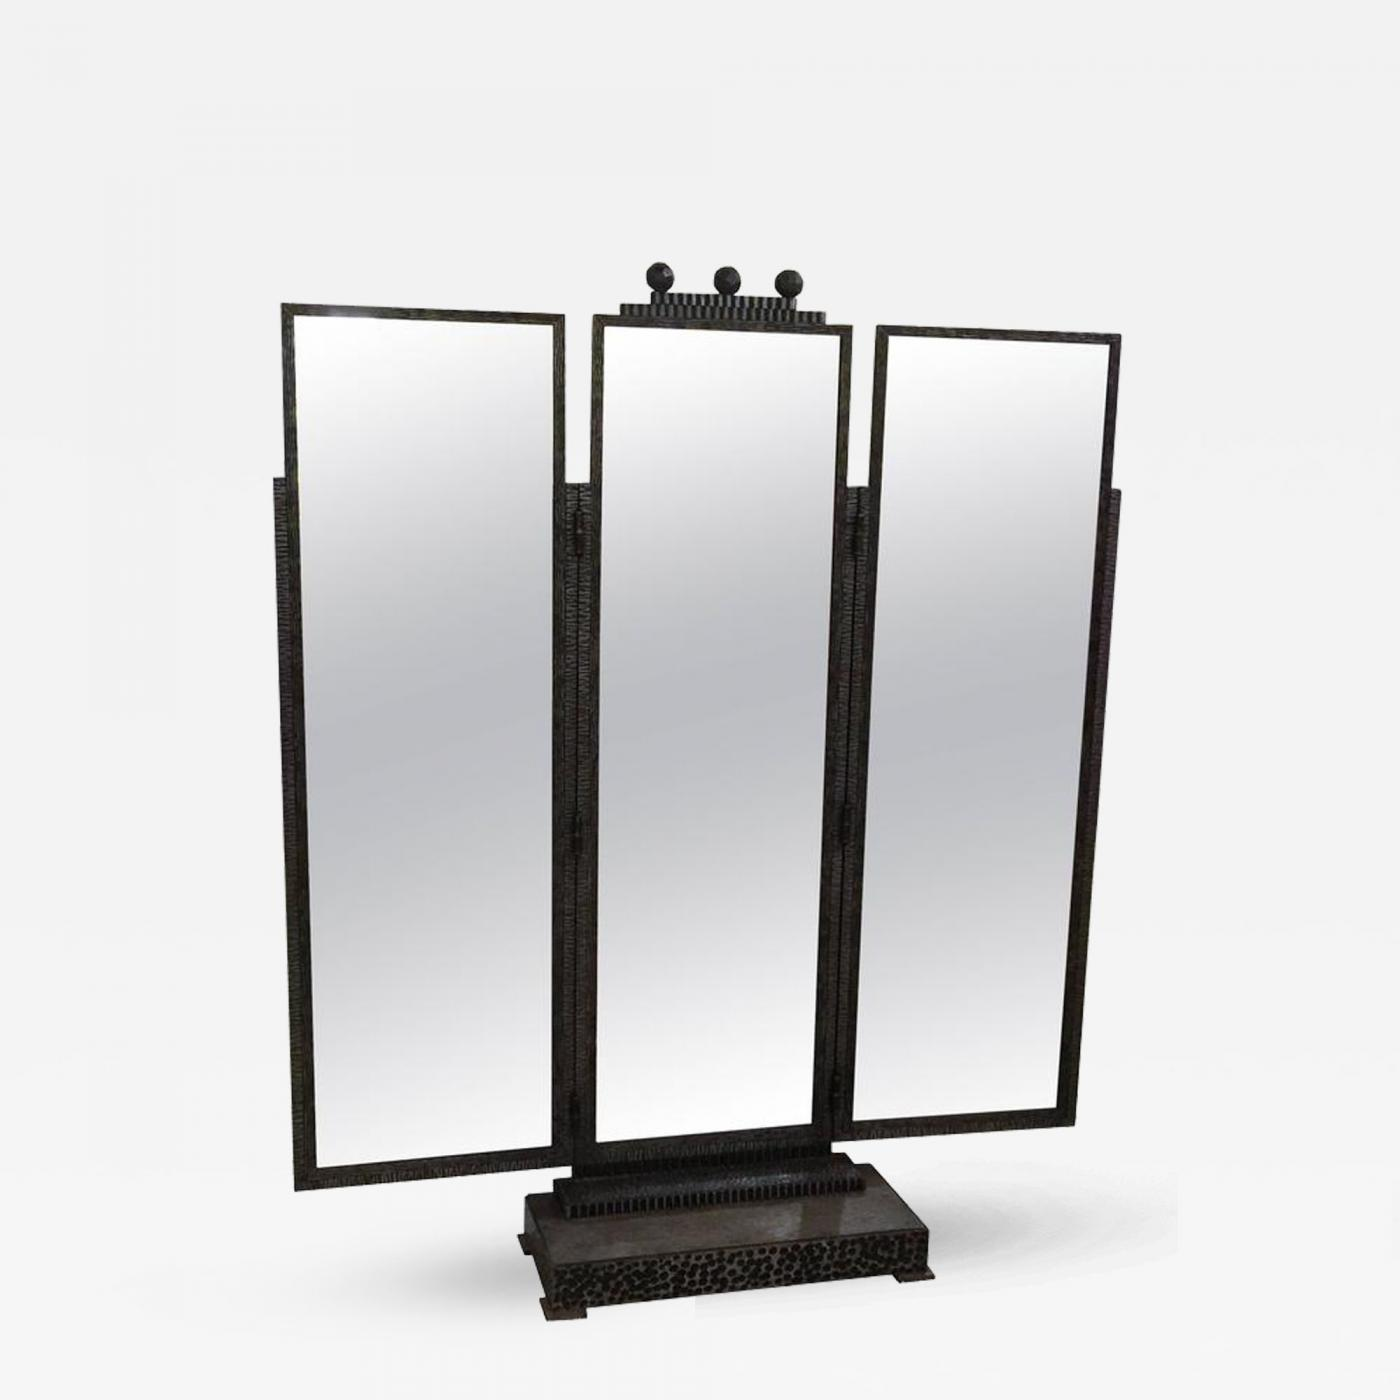 Standing Mirror Jules Bouy Beautiful Jules Bouy Art Deco Wrought Iron Trifold Floor Standing Mirror